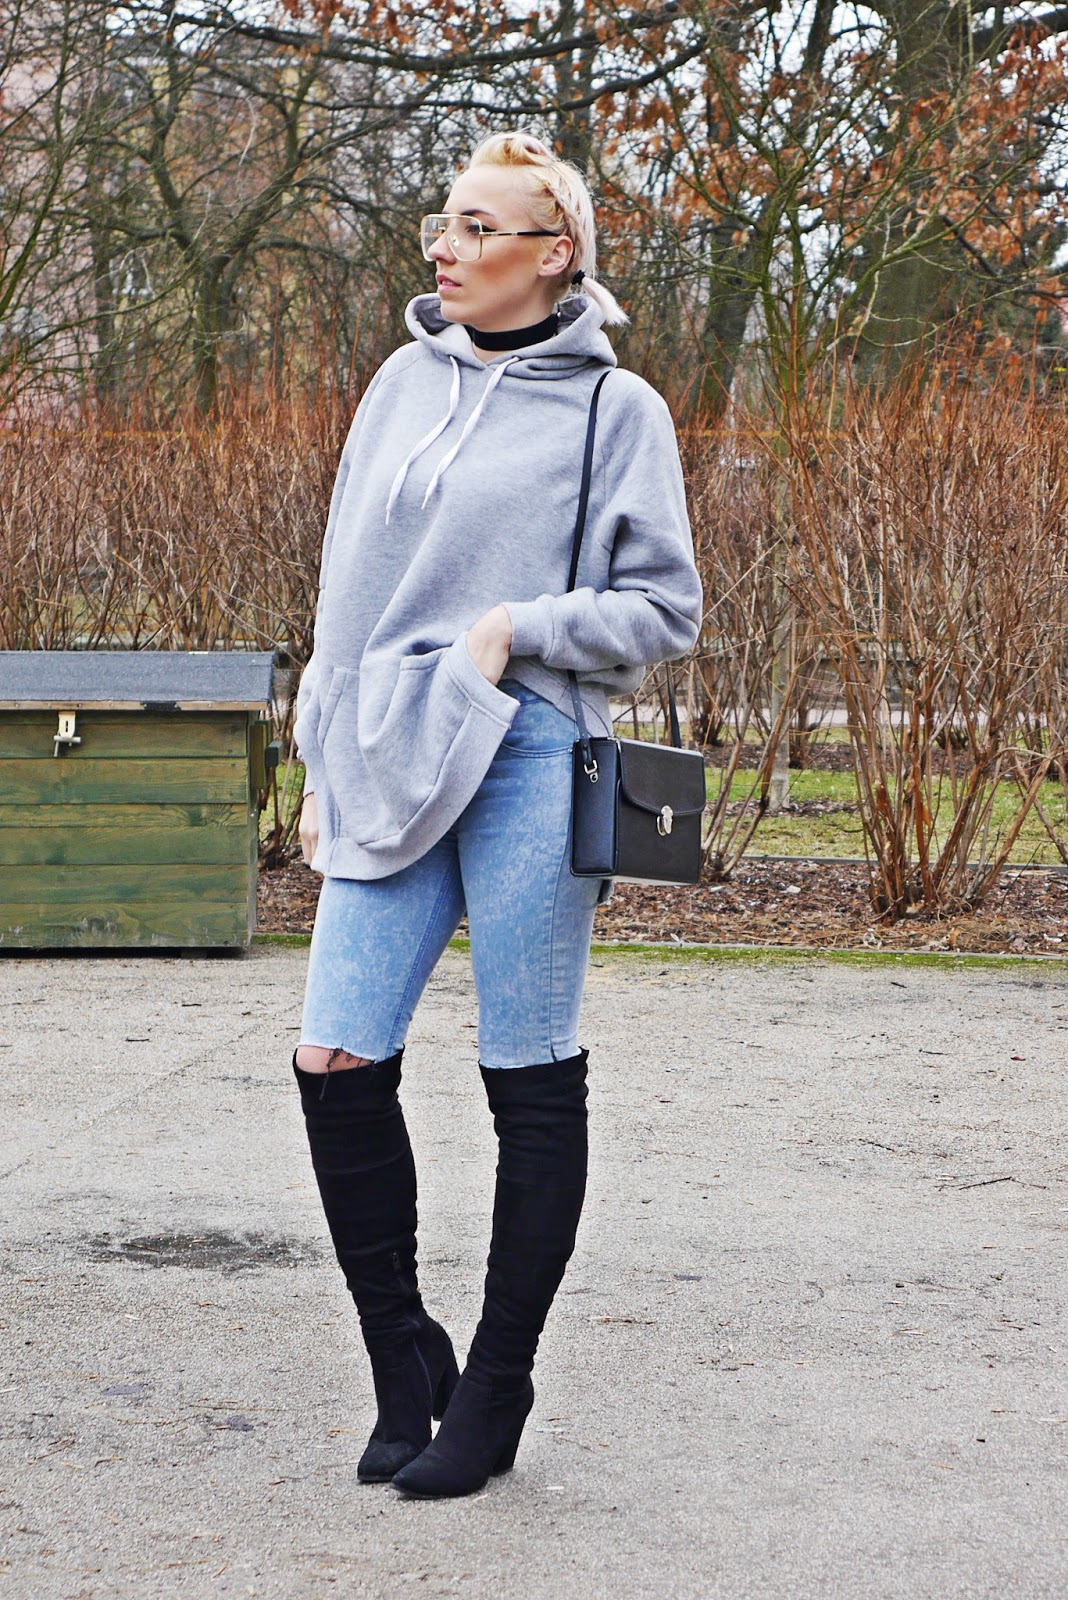 gray_hoodies_blue_jeans_black_boots_high_knee_look_karyn_020317